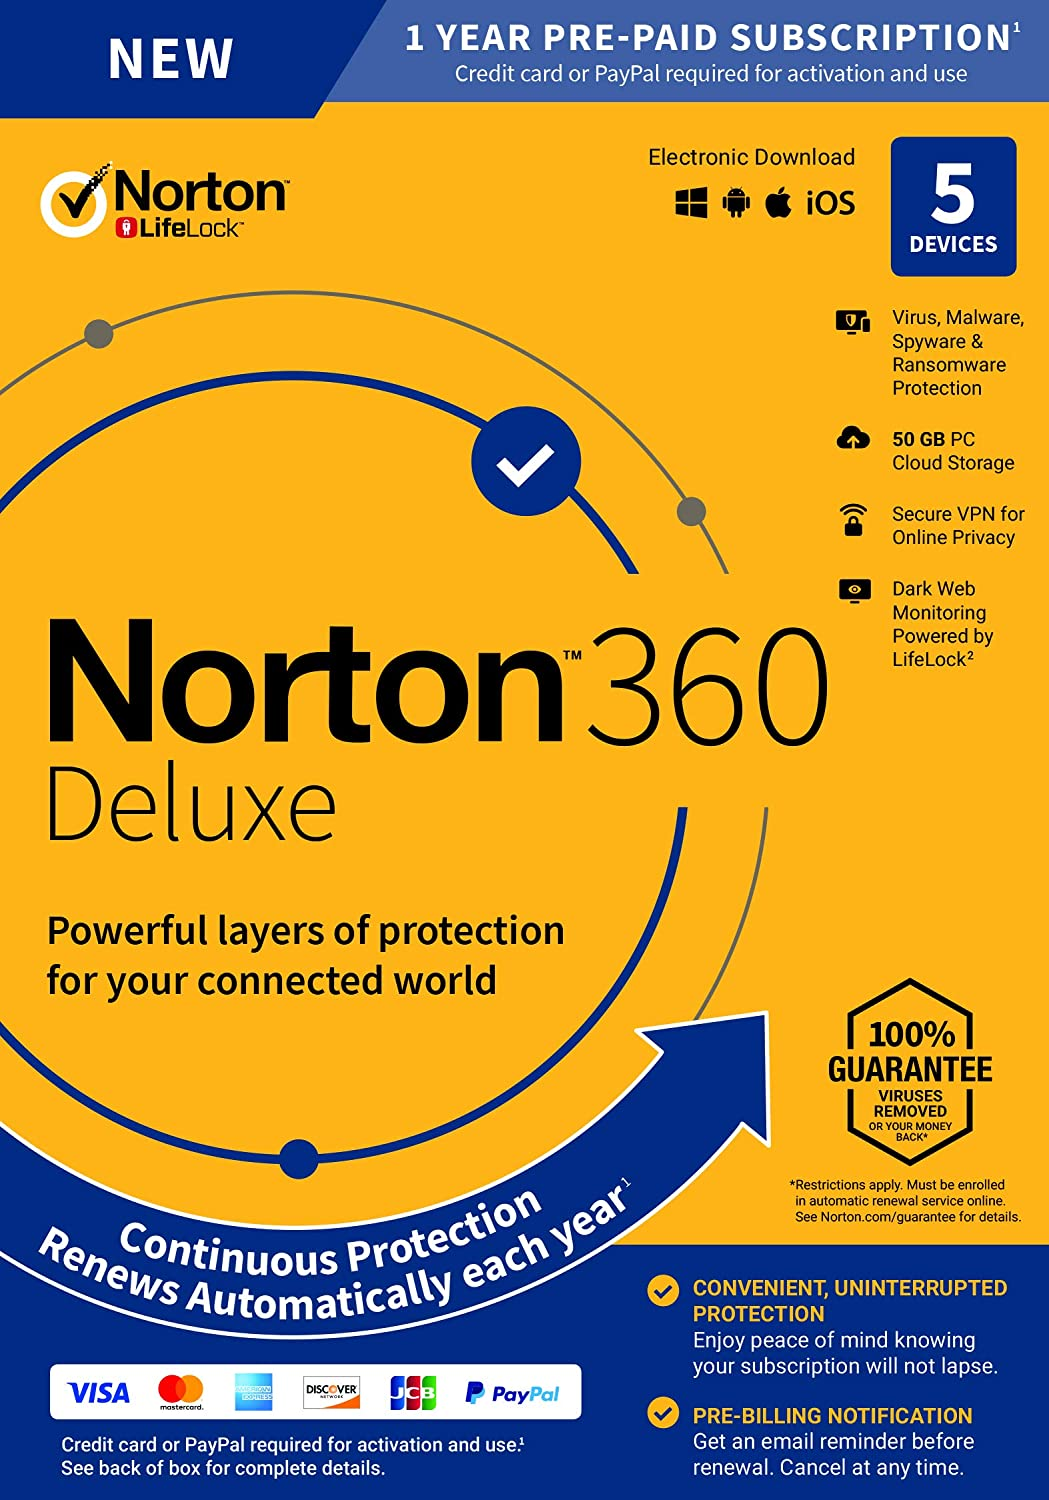 2020 Newest Norton 360 Deluxe – Antivirus Software Key Card for 5 Device with Auto Renewal - Includes VPN, PC Cloud Backup and Dark Web Monitoring powered by LifeLock 81gj4ZvrHdL